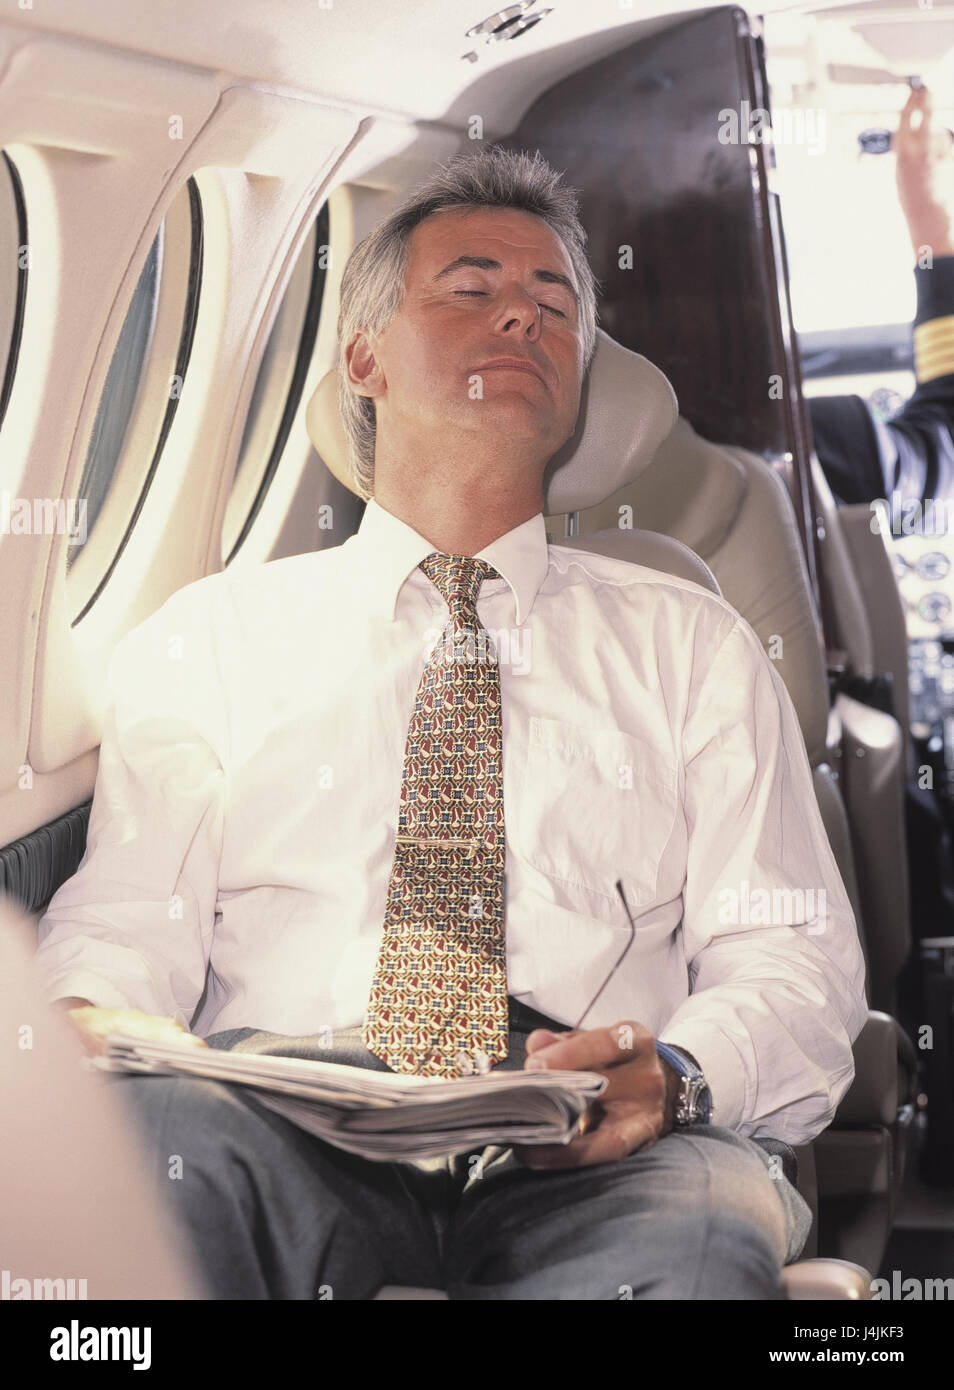 Airplane Man Middle Old Person Sit Sleep Inside Fly Travel